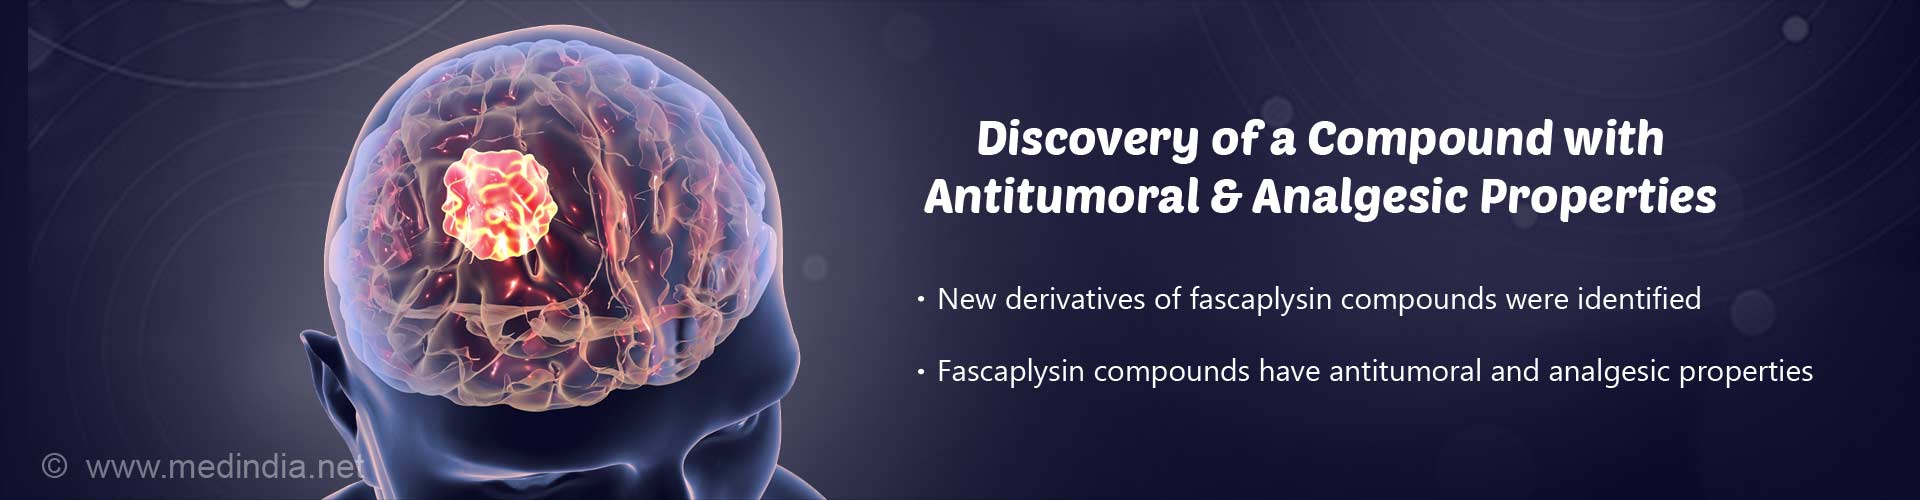 discovery of a compound with antitumoral & analgesic properties